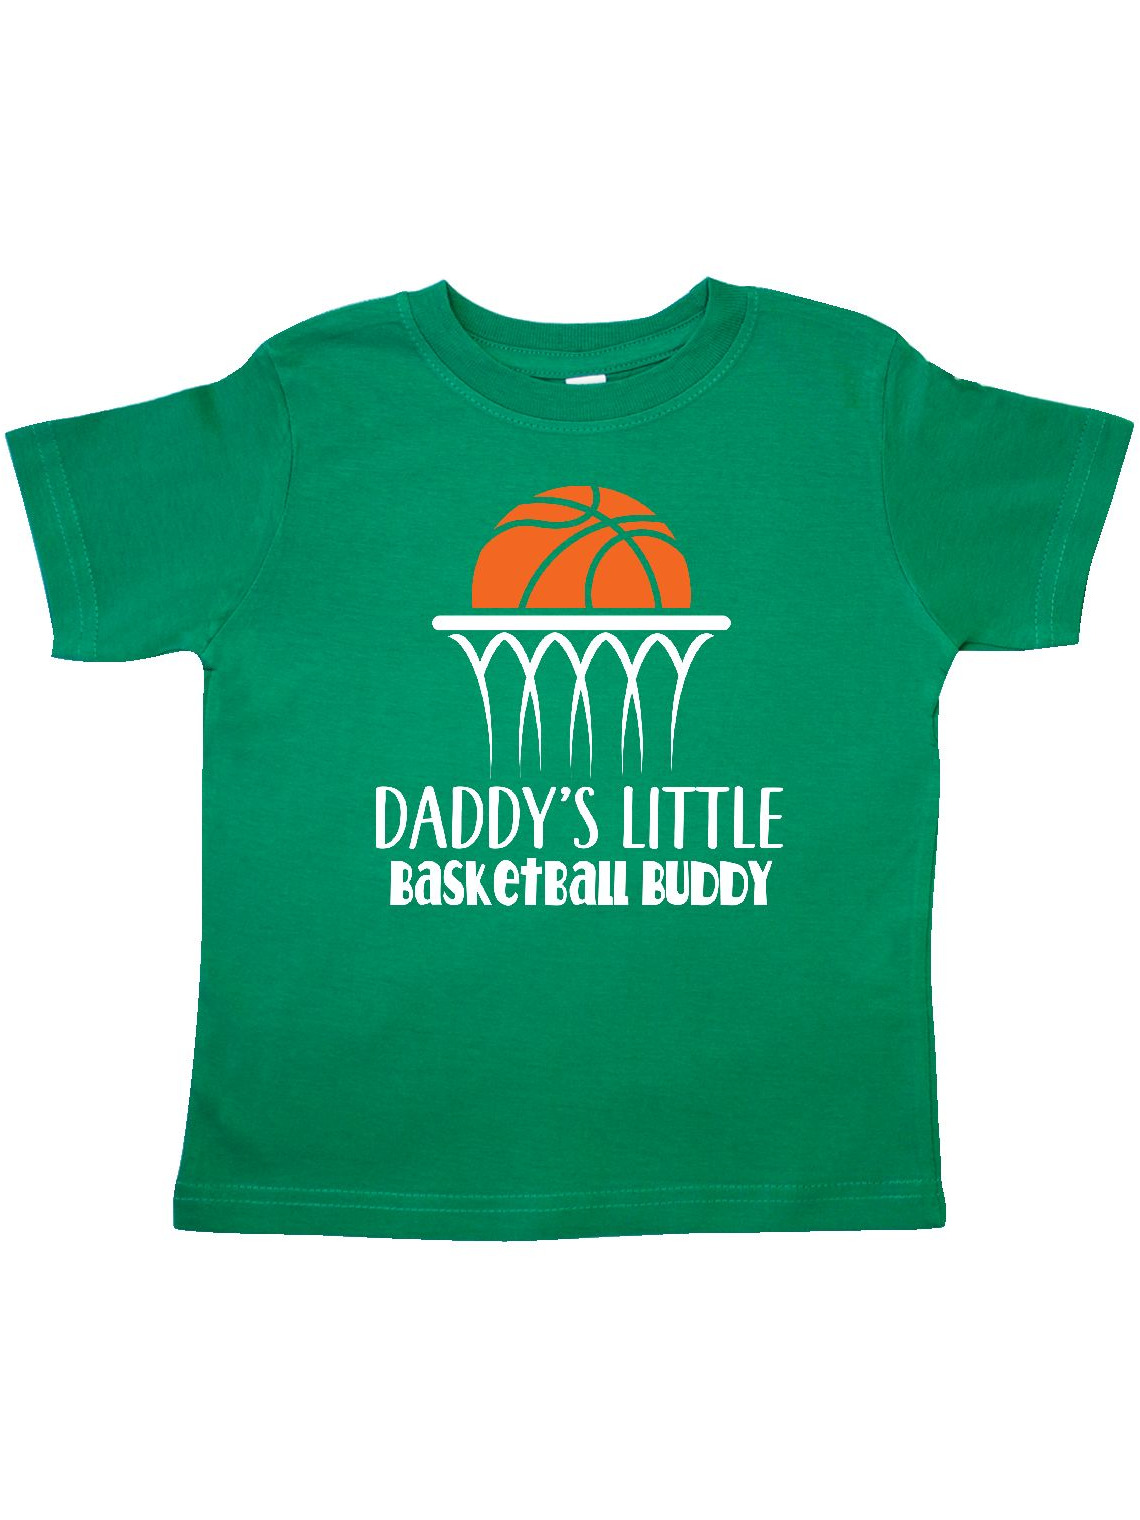 Daddys Little Basketball Buddy Boys Toddler T-Shirt